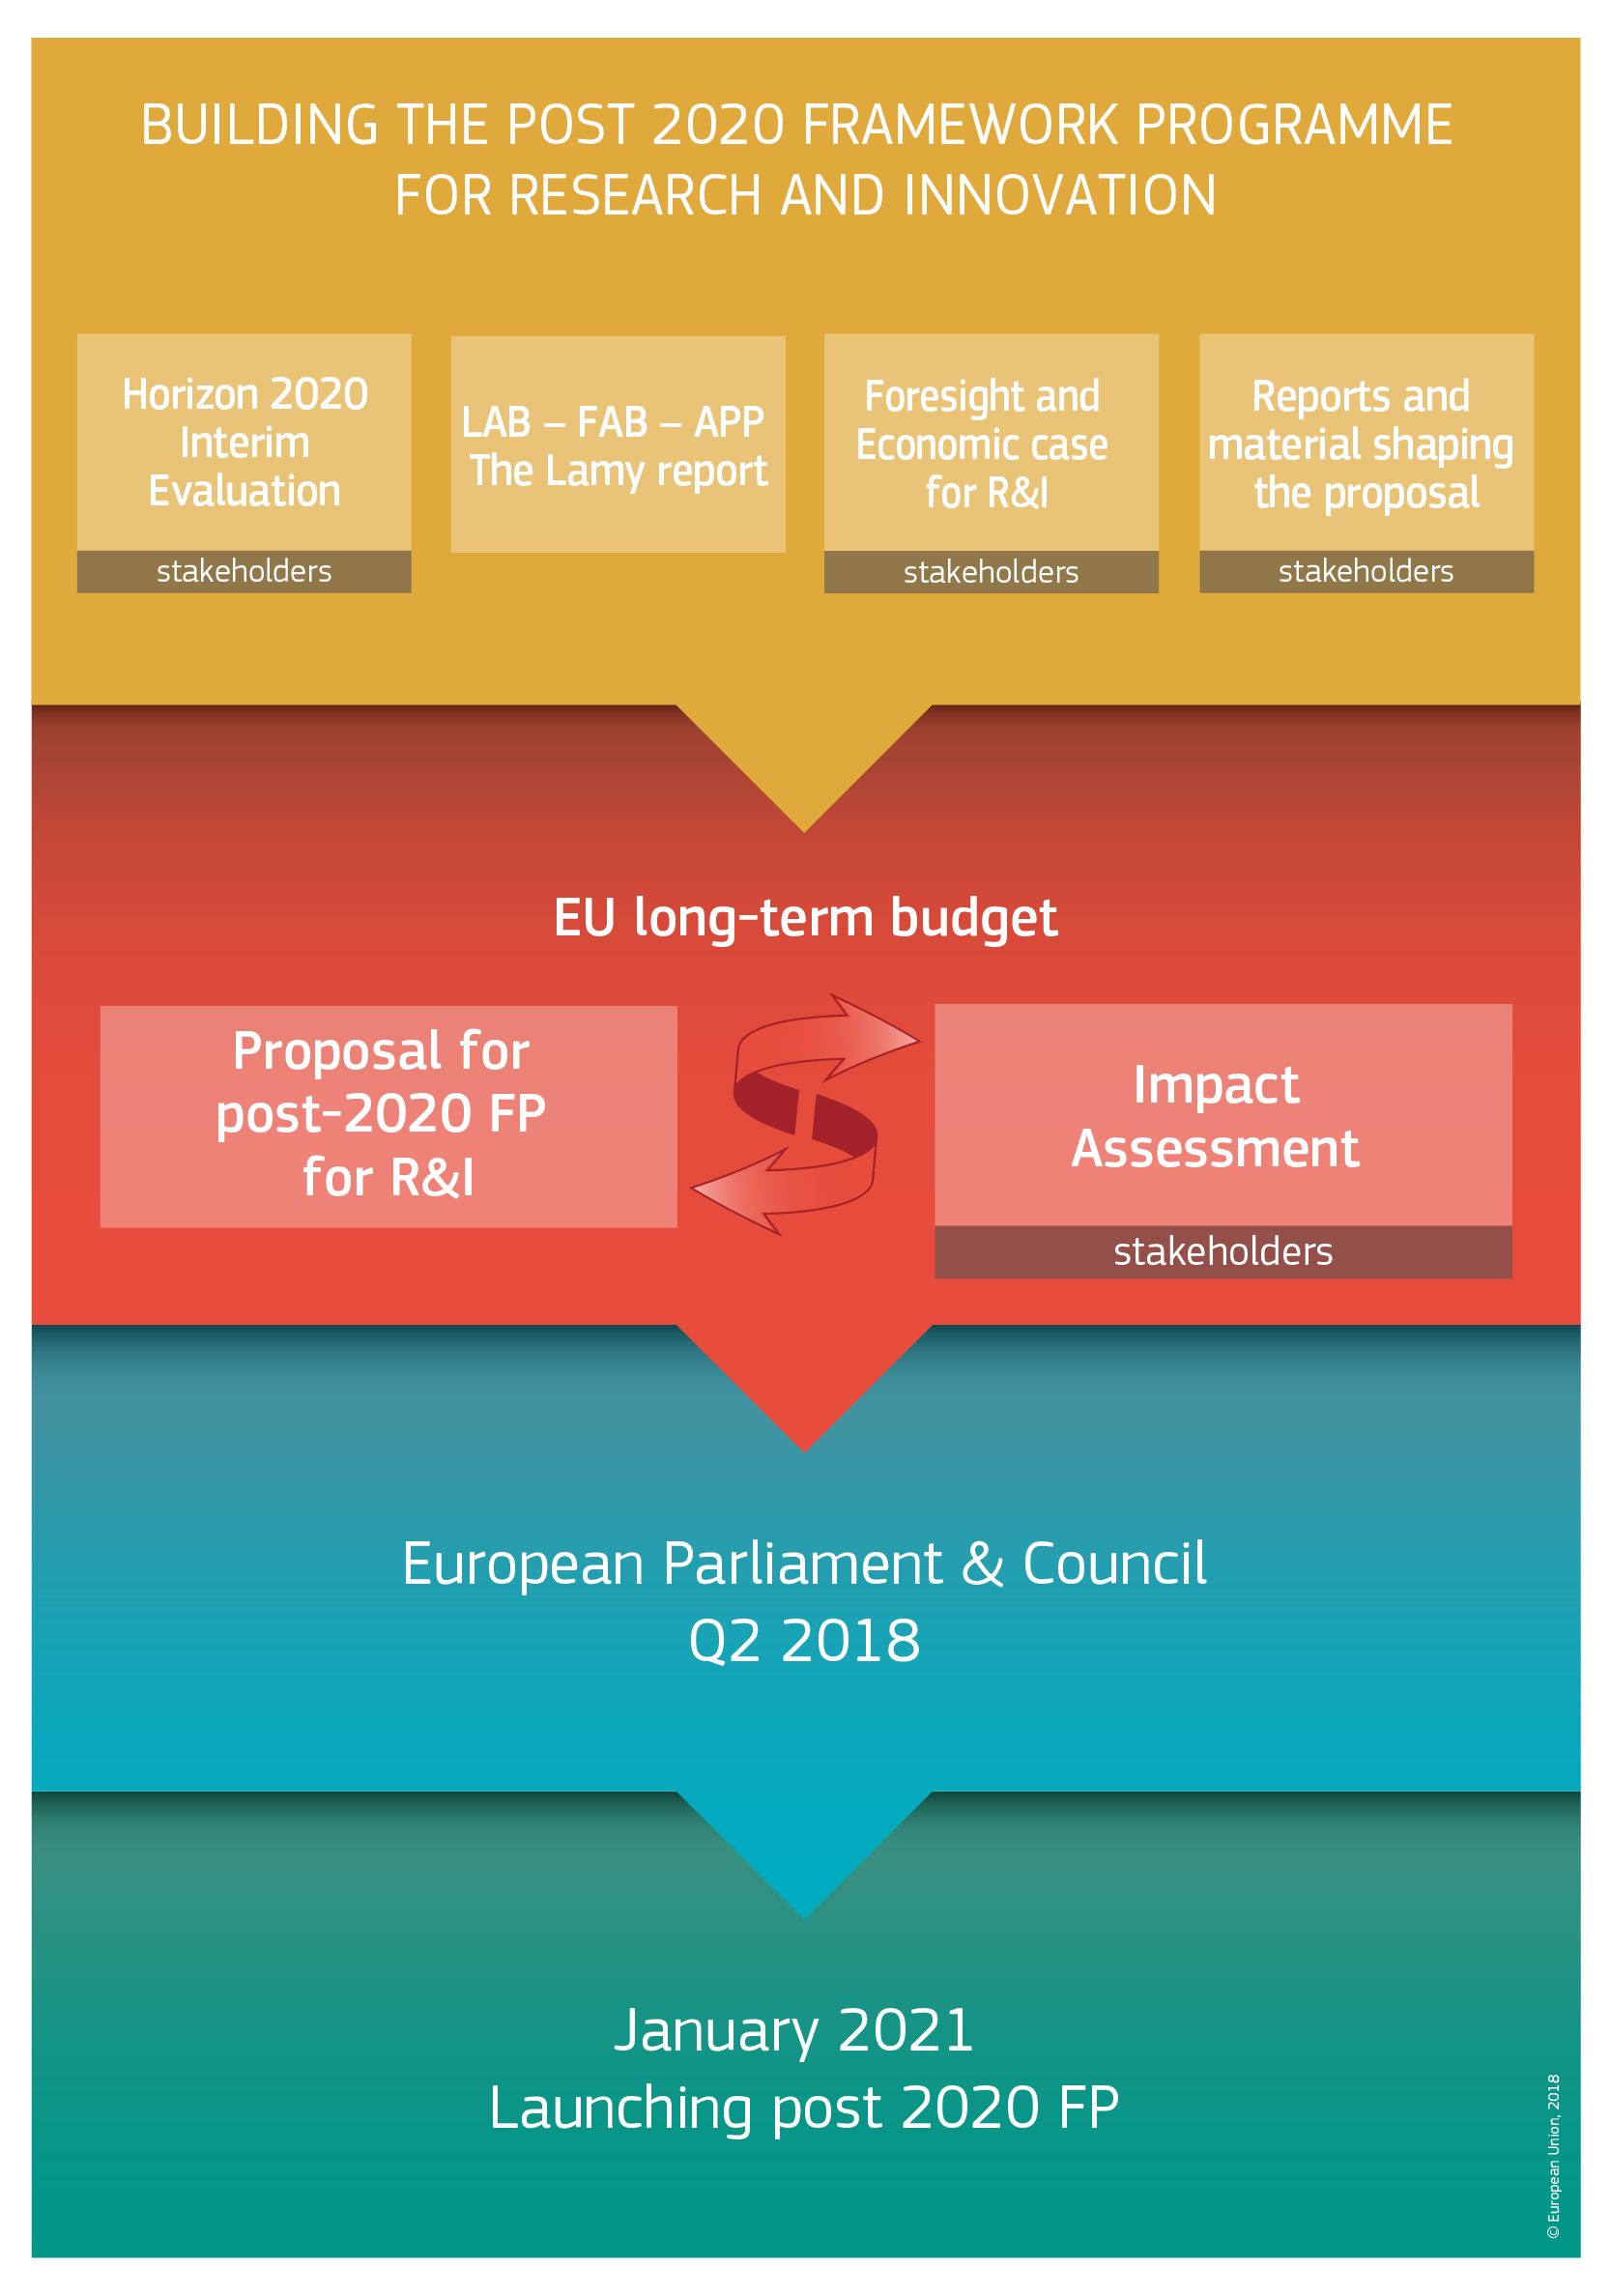 Building the post 2020 framework programme for research and innovation